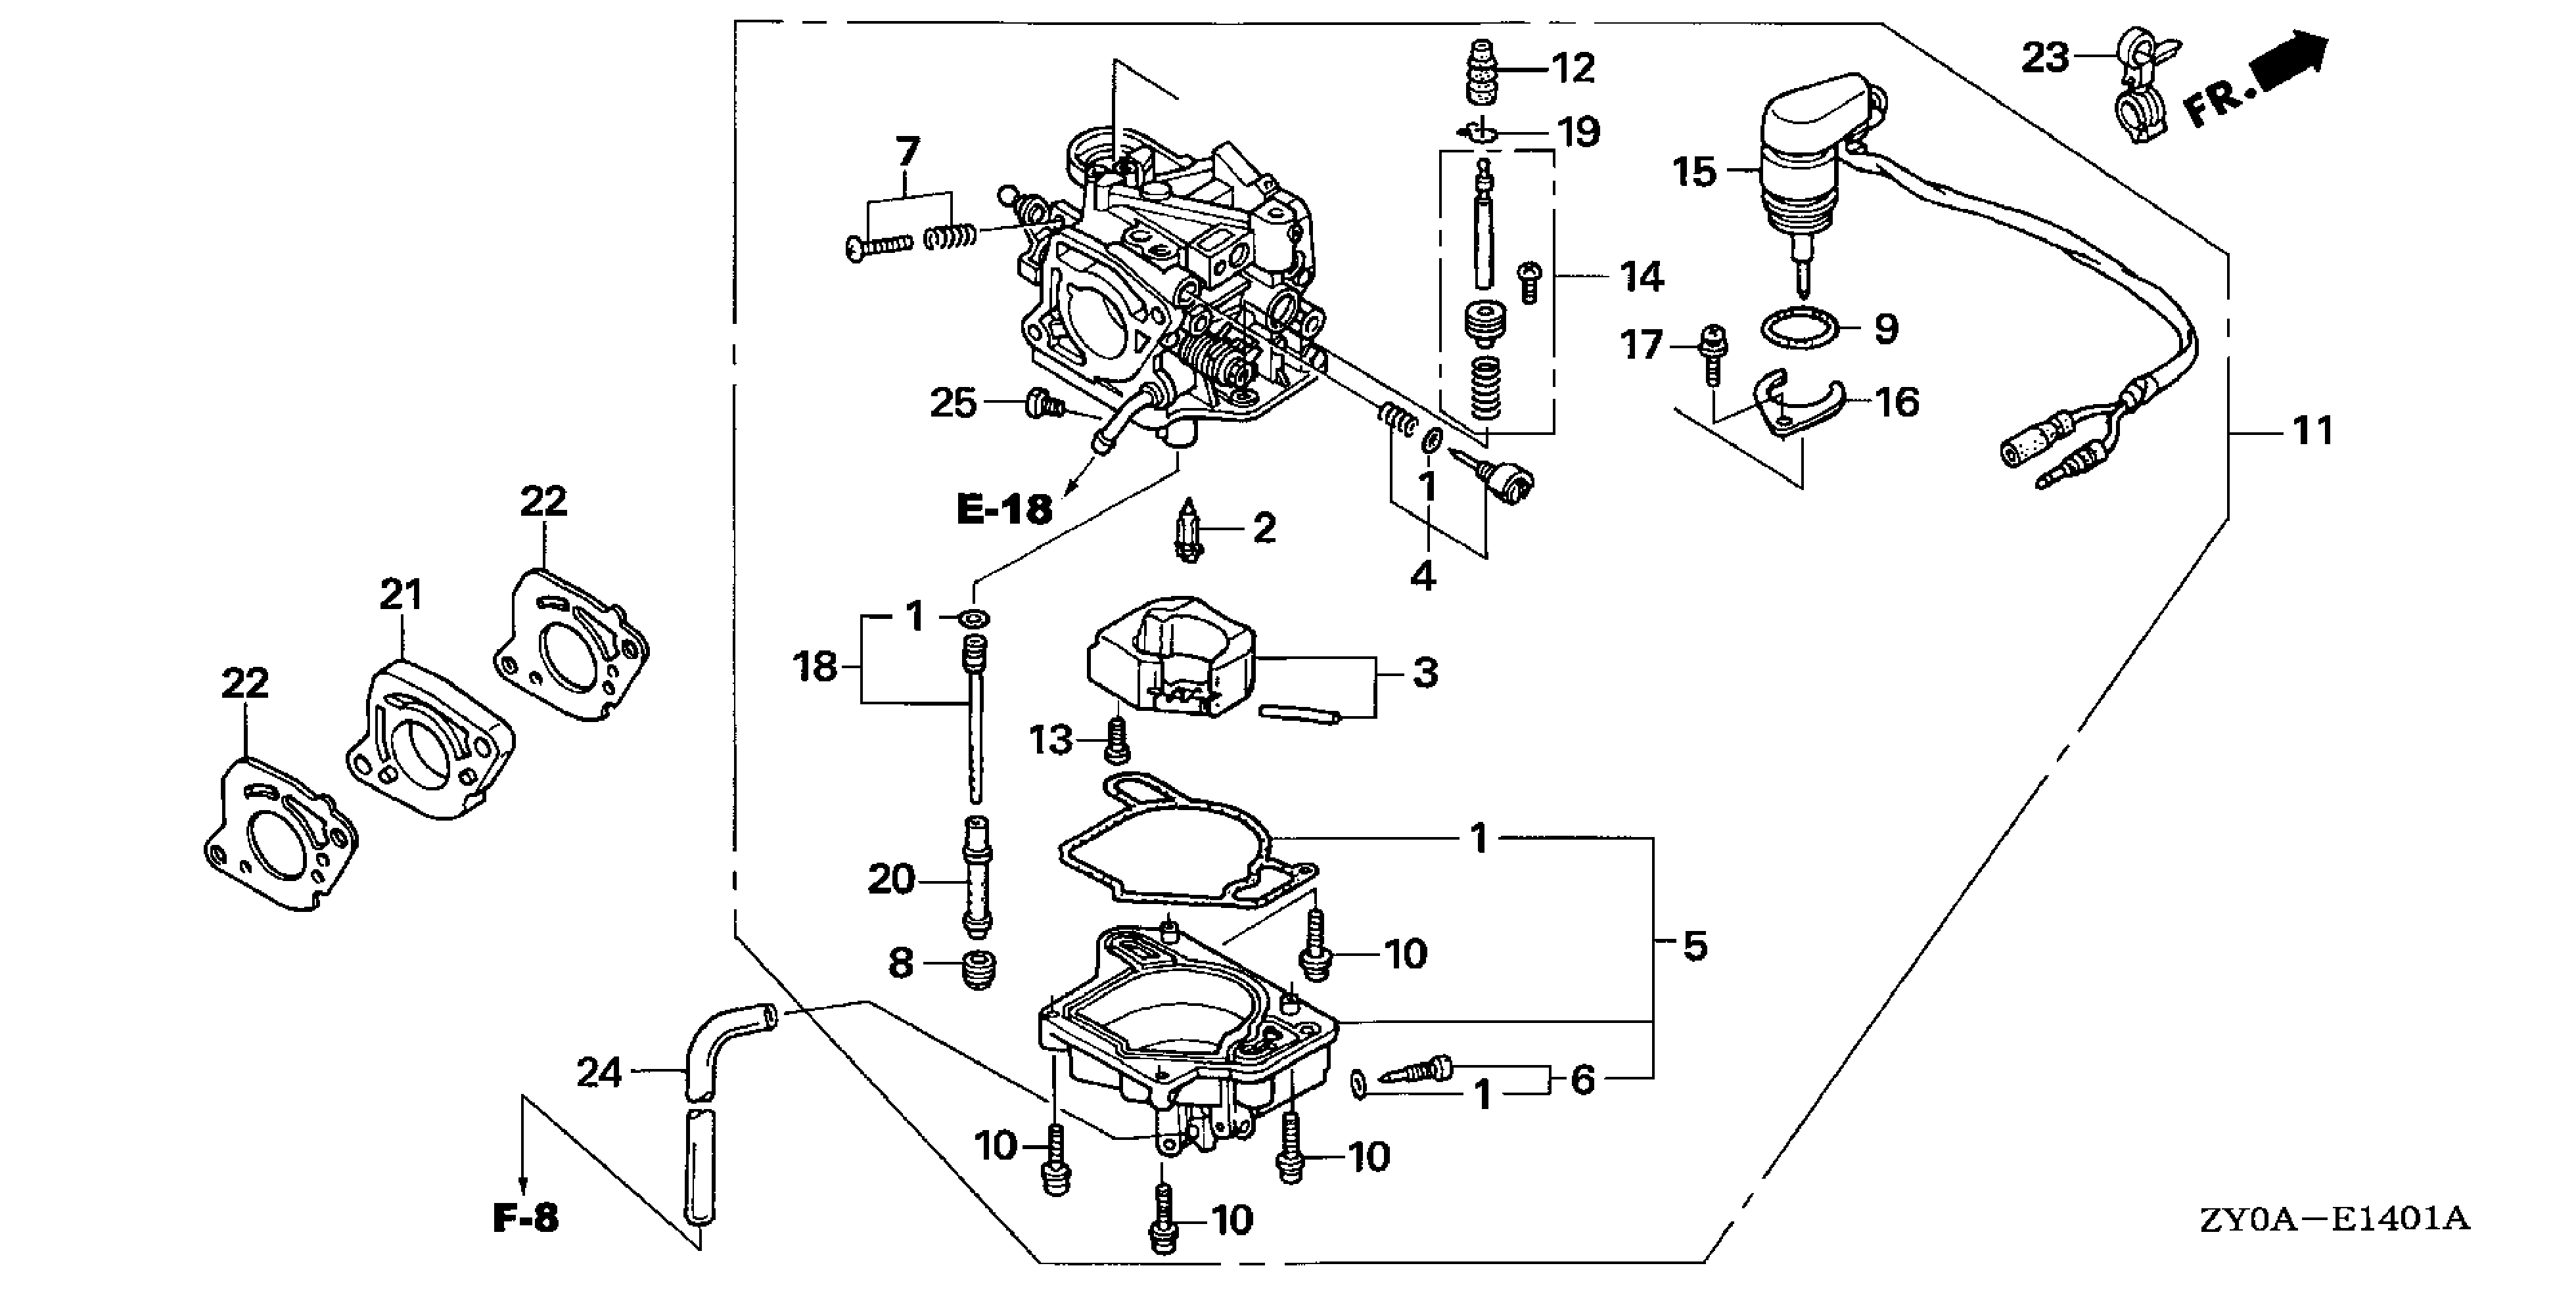 4 9 Cadillac Engine Diagram Function For Wiring And Ebooks Honda 2 Todays Rh 5 6 1813weddingbarn Com 16 Ecm 1991 V8